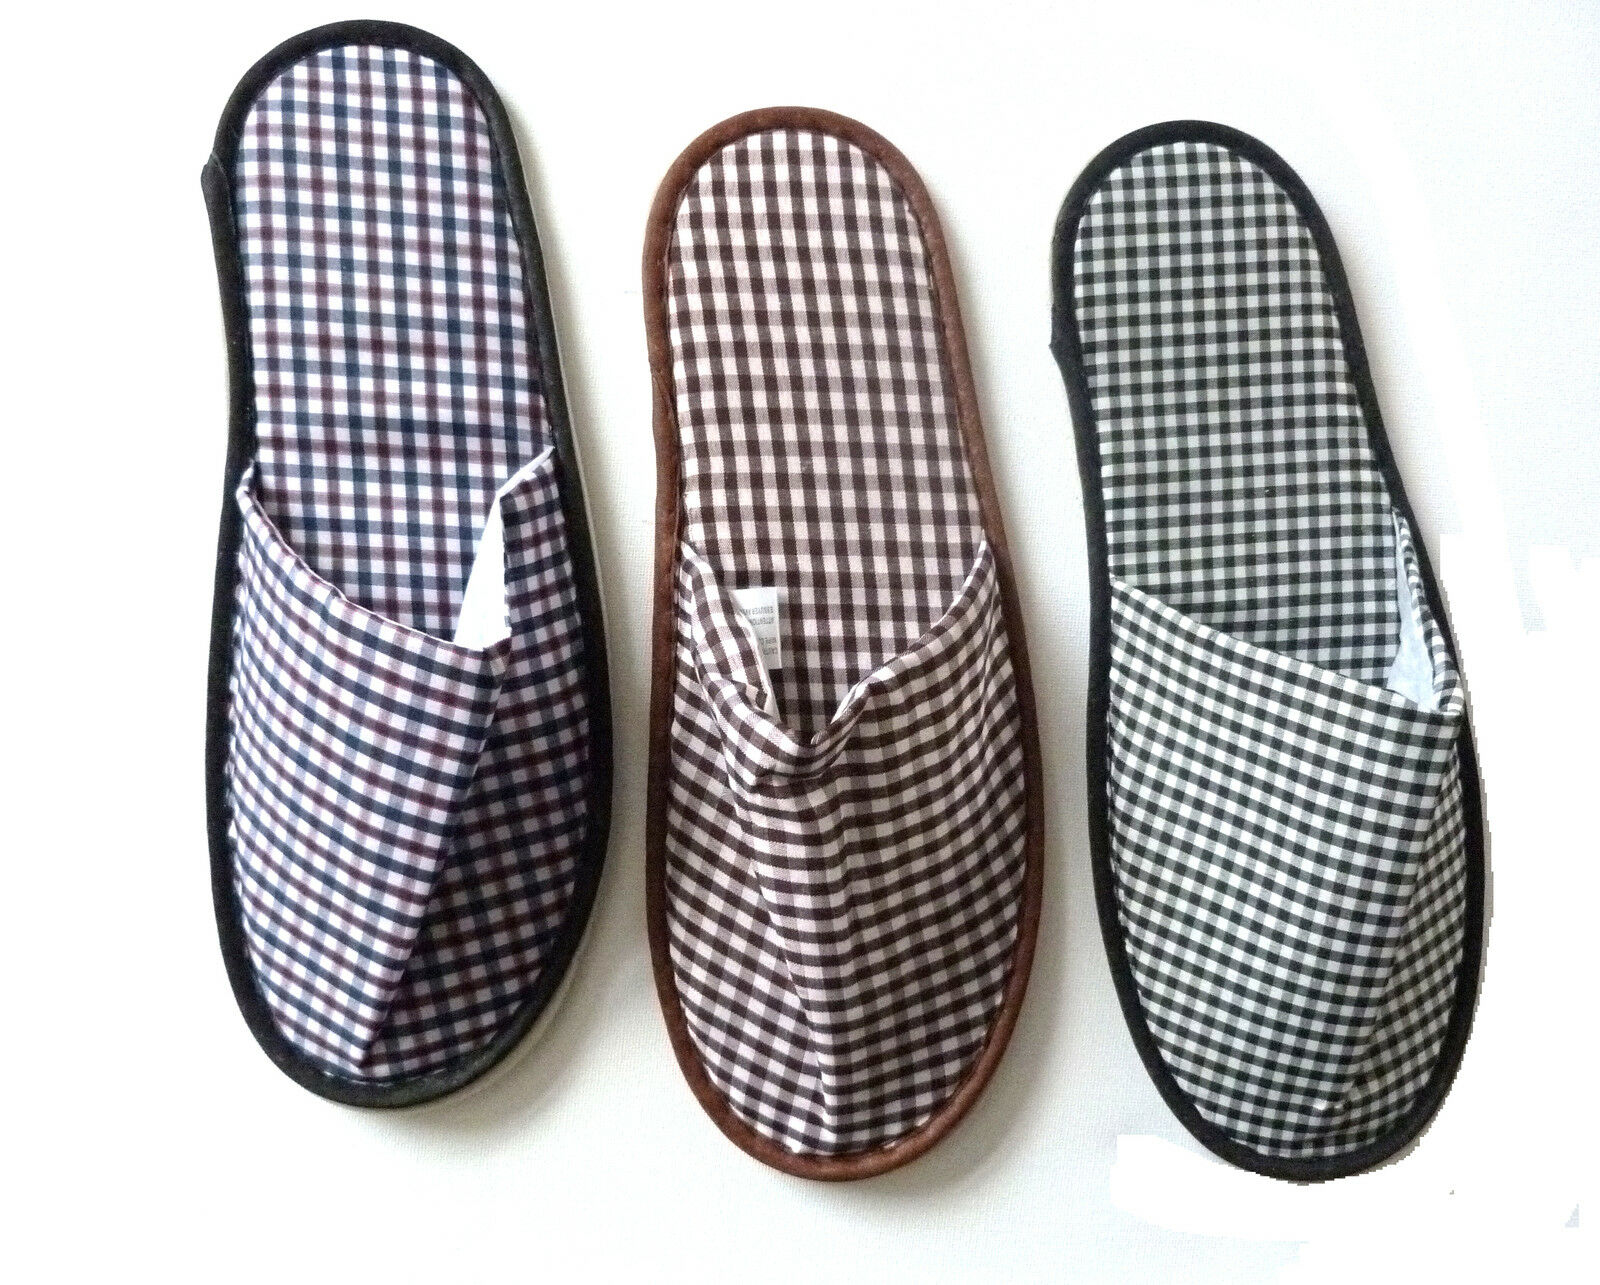 NEW CHECK PATTERN MULE SLIPPERS IDEAL FOR ALL FAMILY MEMBERS MALE FEMALE TEENS